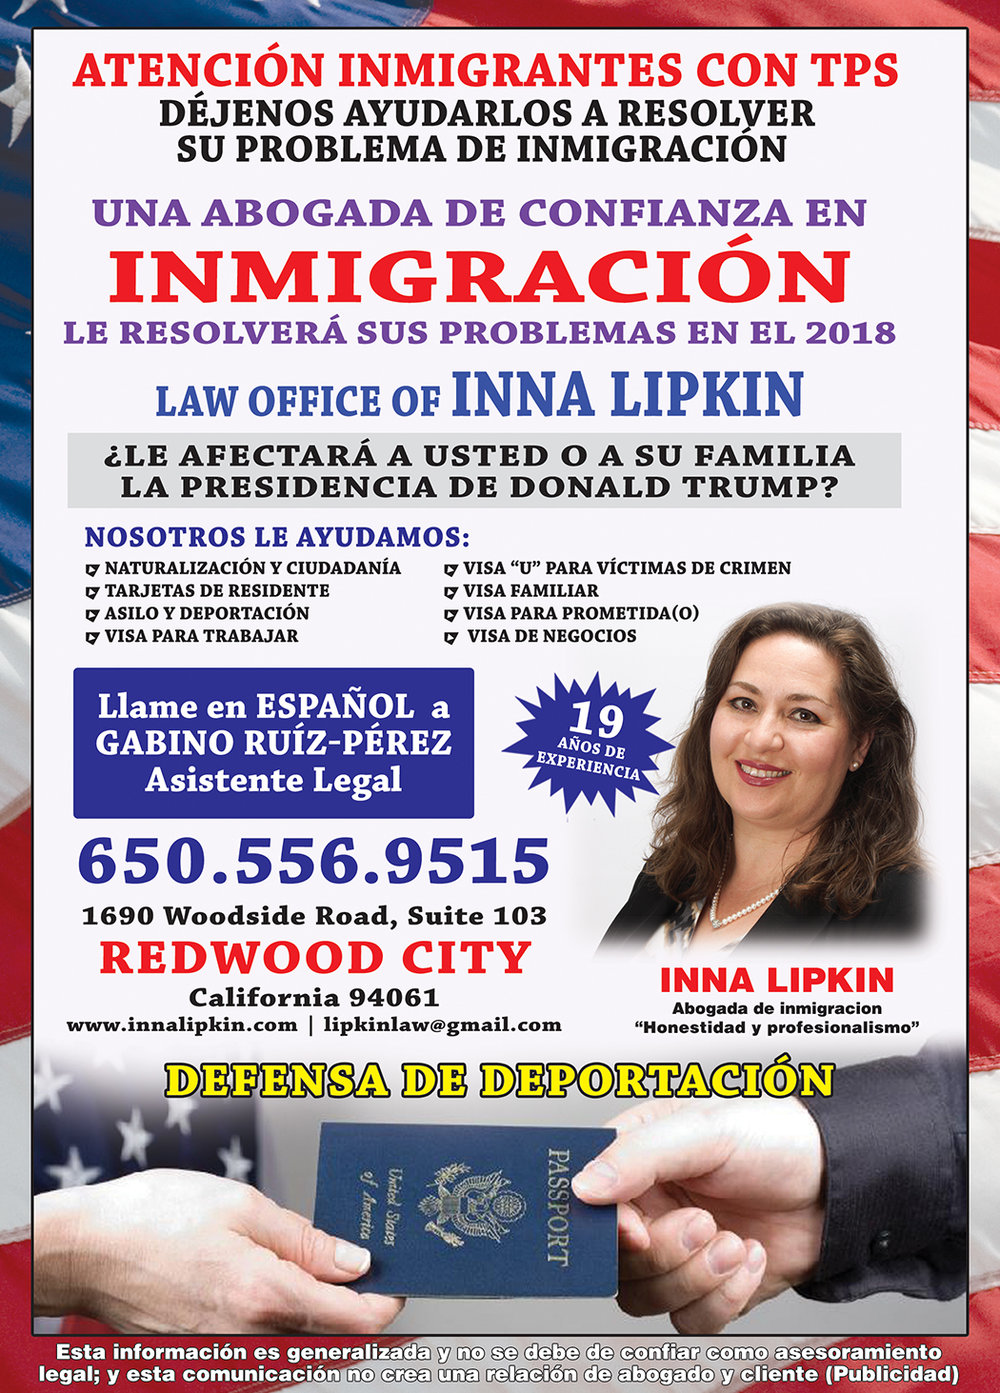 Inna Lipkin Law Office 1 pag FEBRERO 2018 copy.jpg